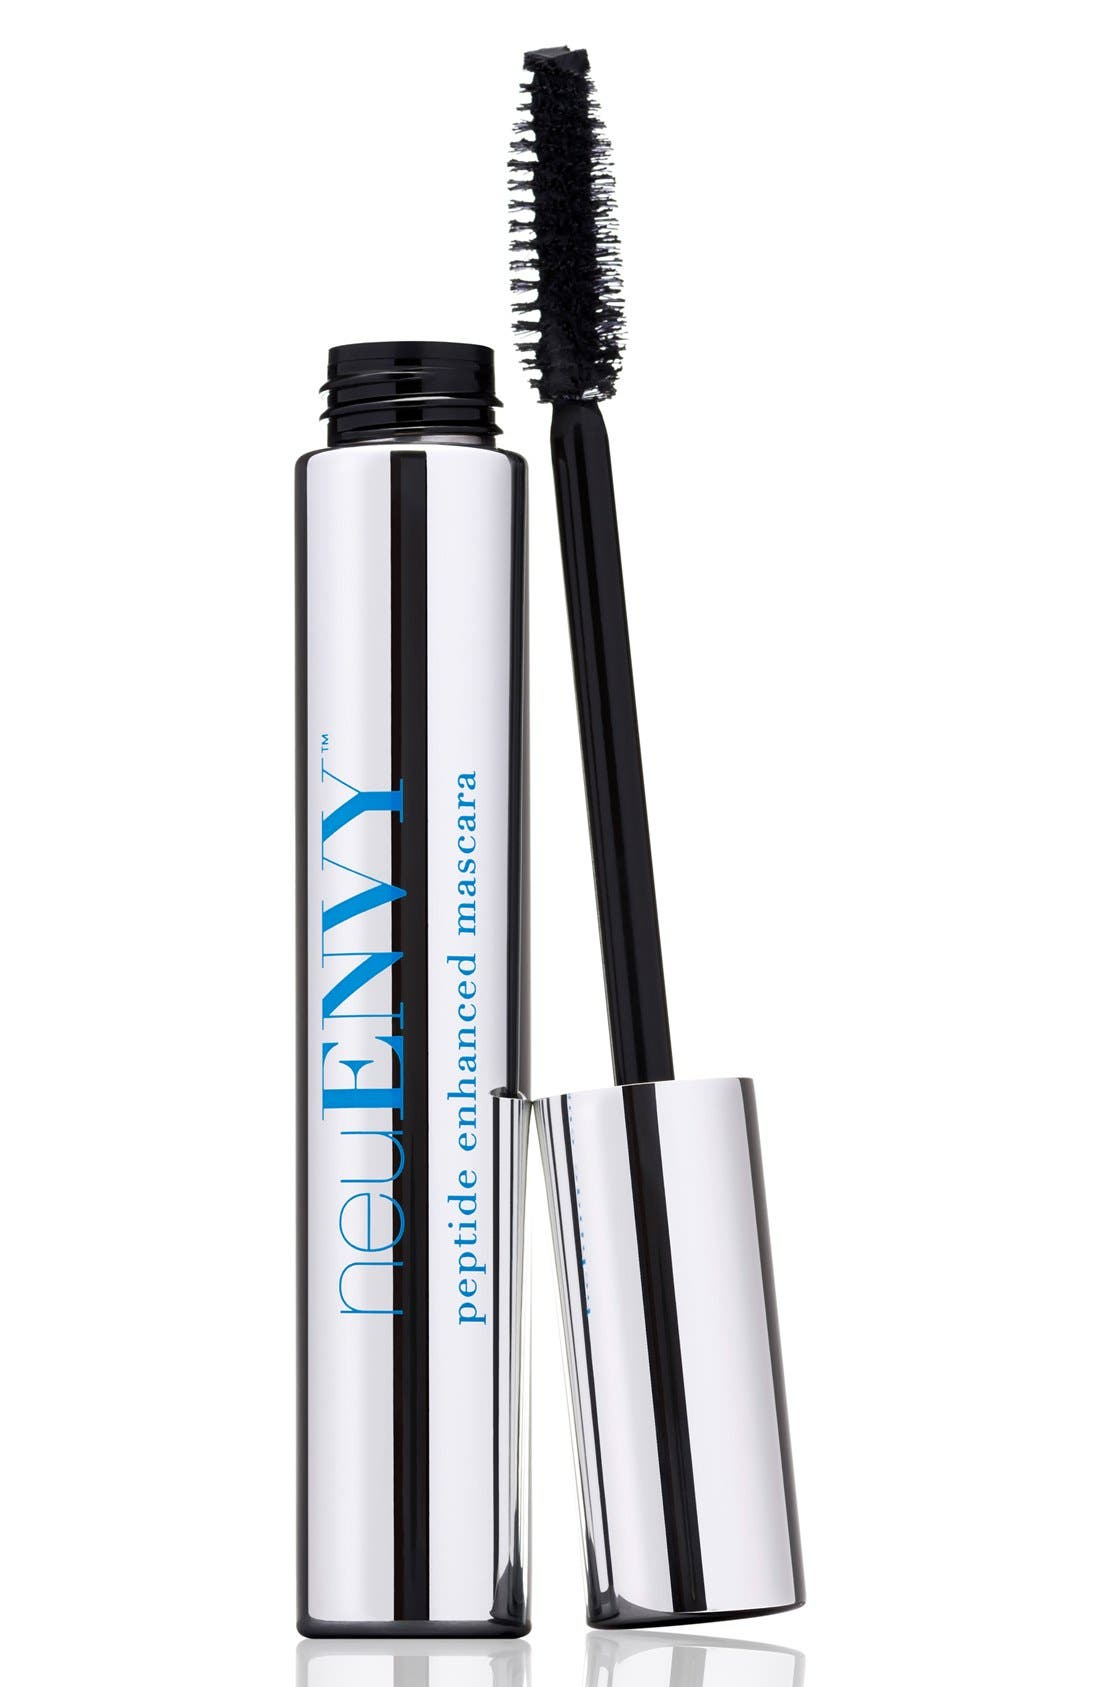 neuLASH® by Skin Research Laboratories neuENVY™ Peptide Enhanced Mascara